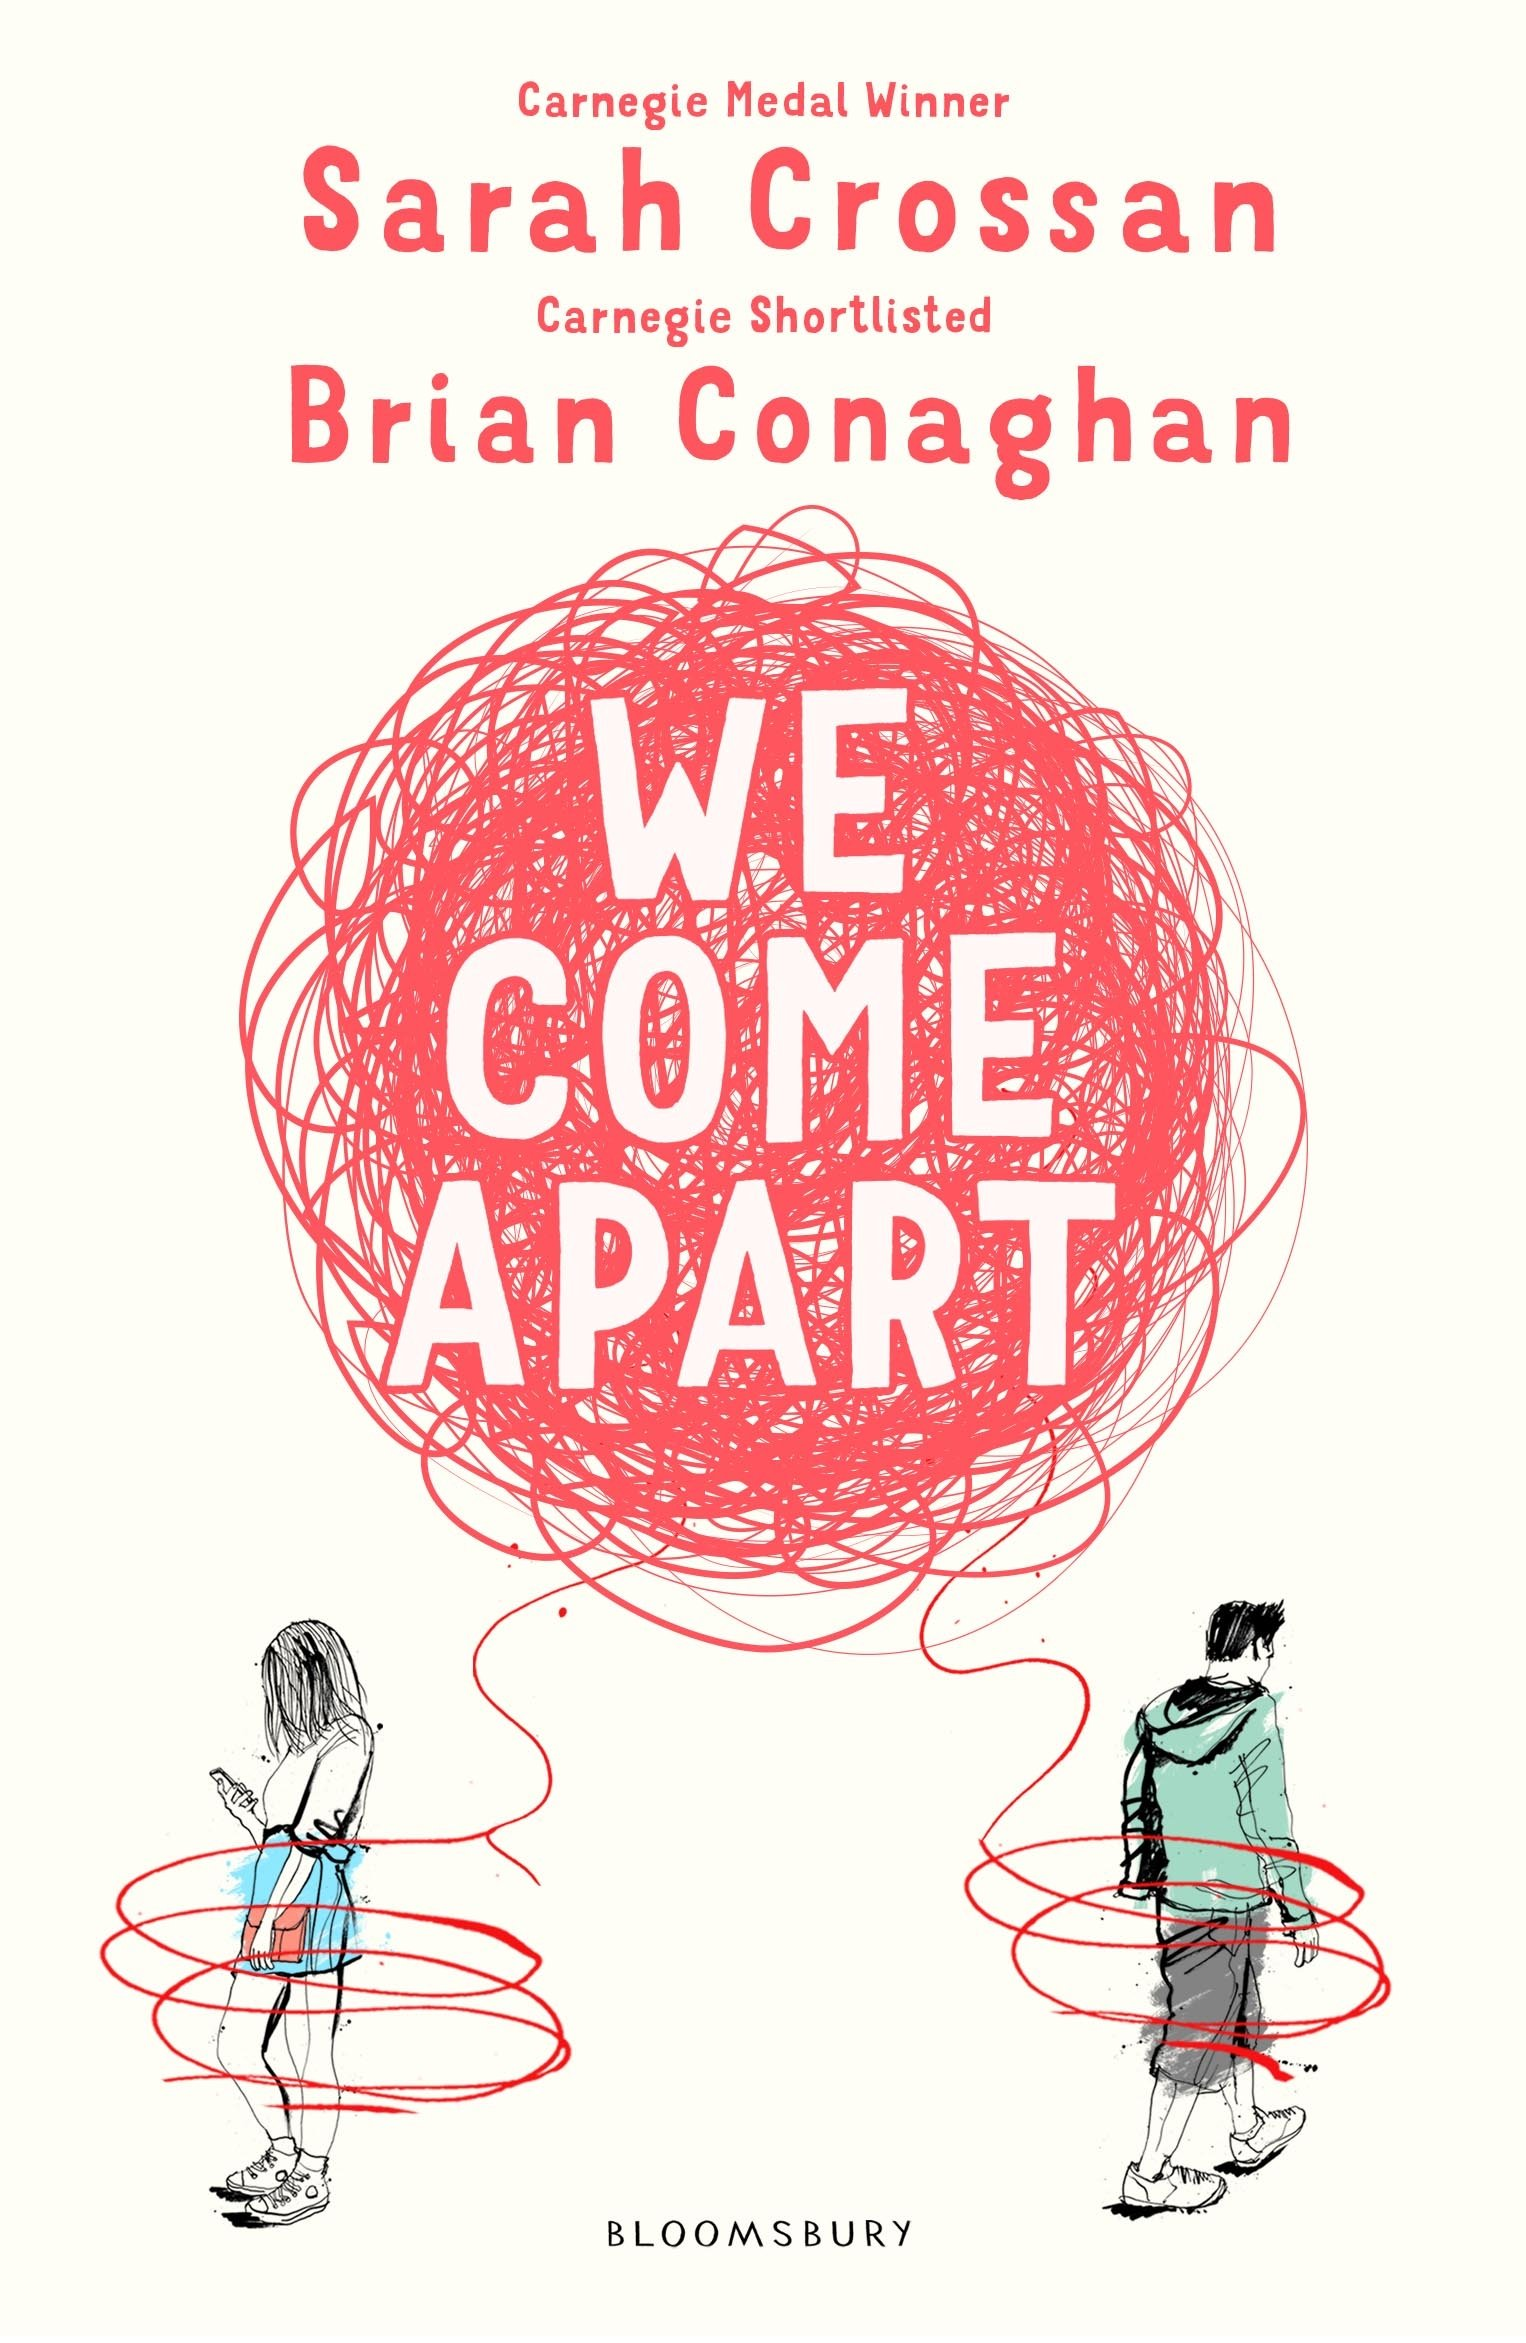 Buy WE COME APART by Sarah Crossan and Brian Conaghan